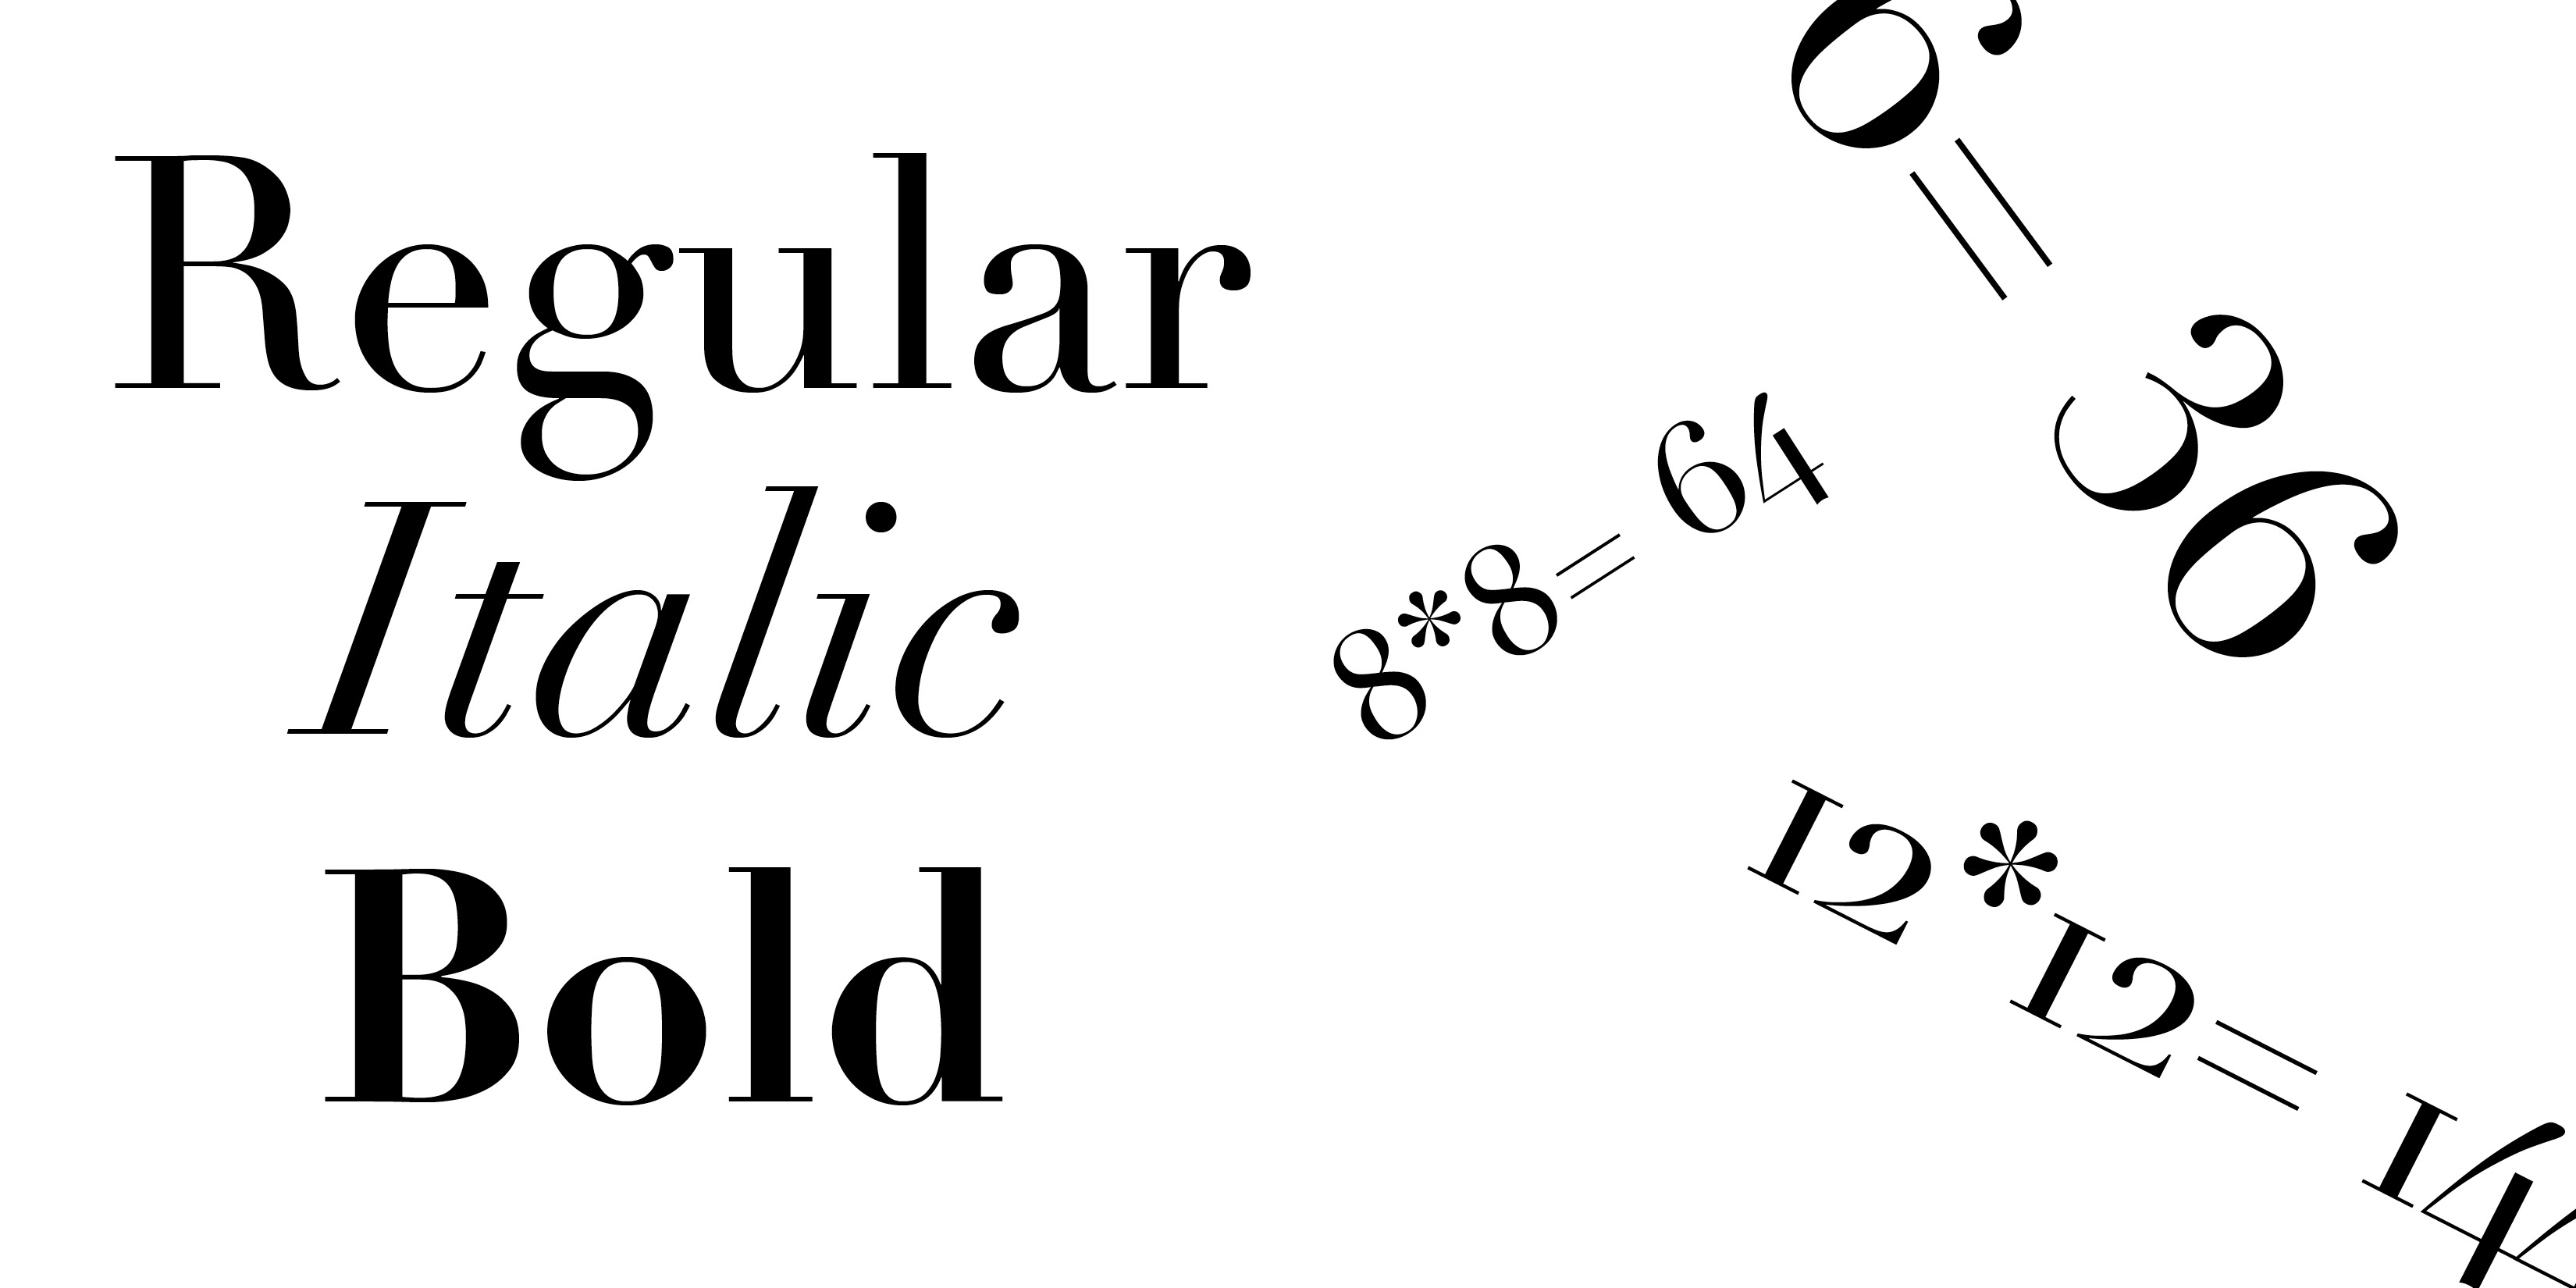 Didot Typeface Jack Bauer6